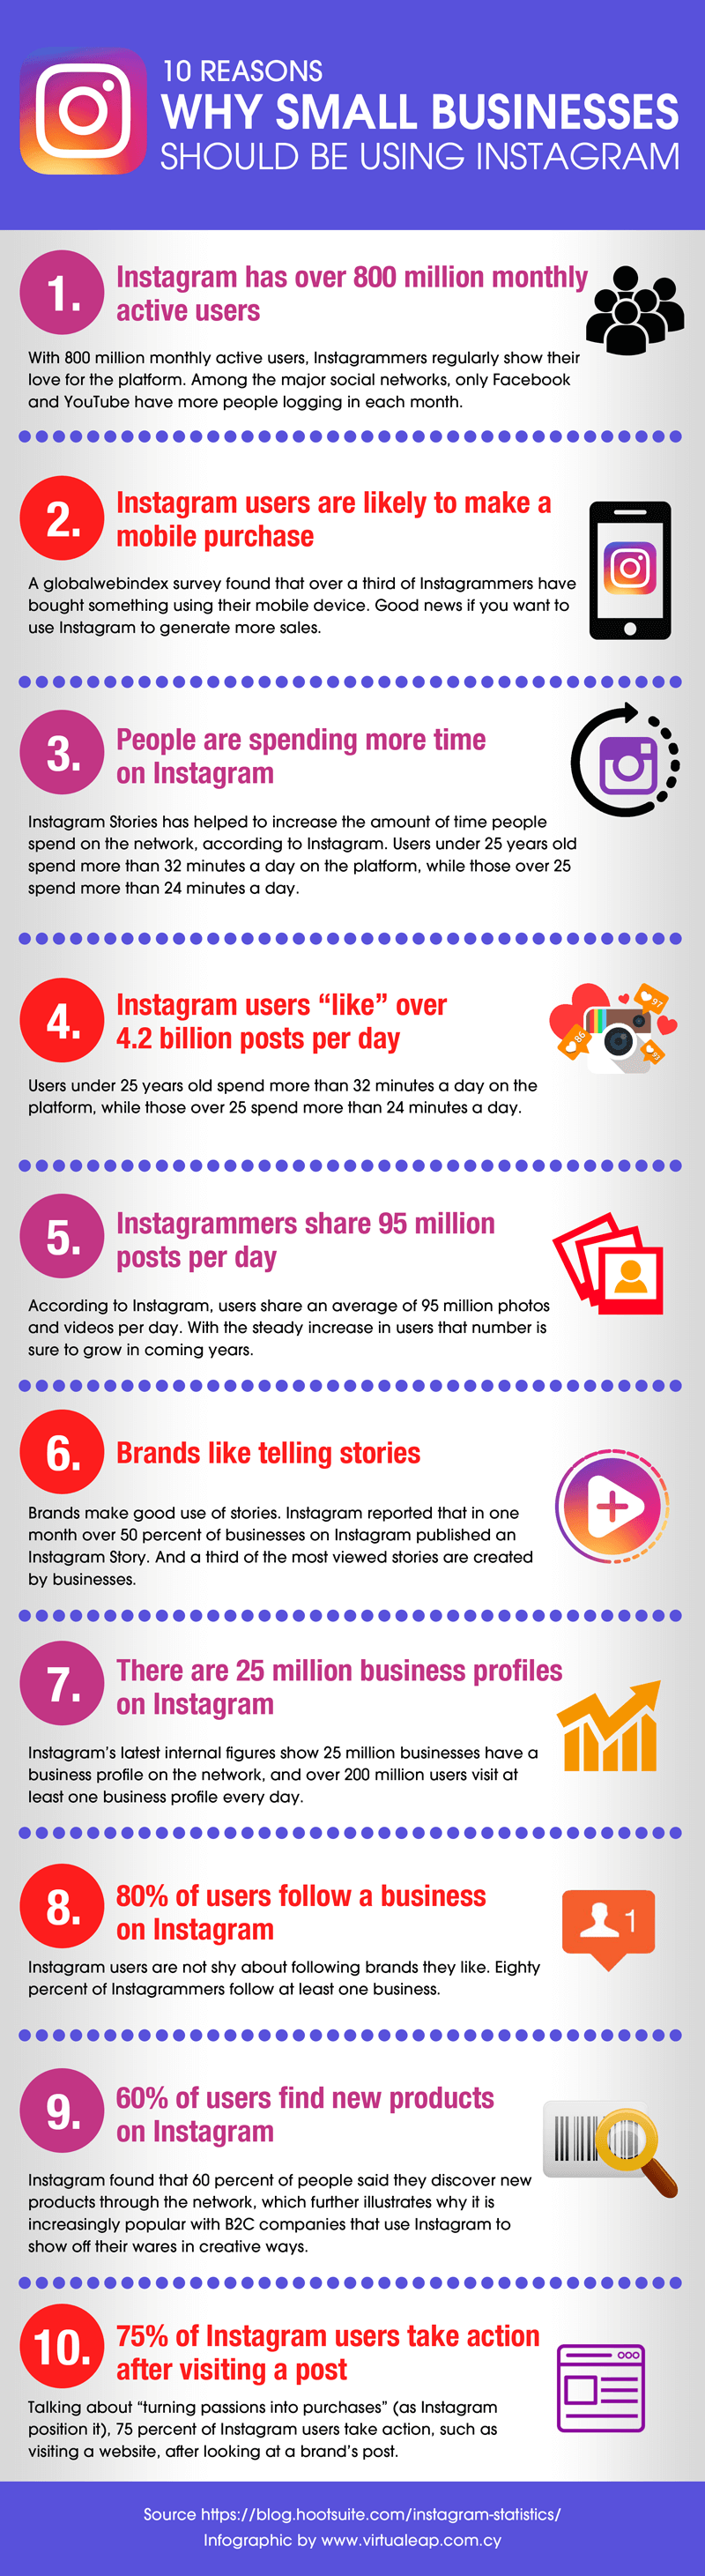 10 Reasons Why Small Businesses Should be using Instagram